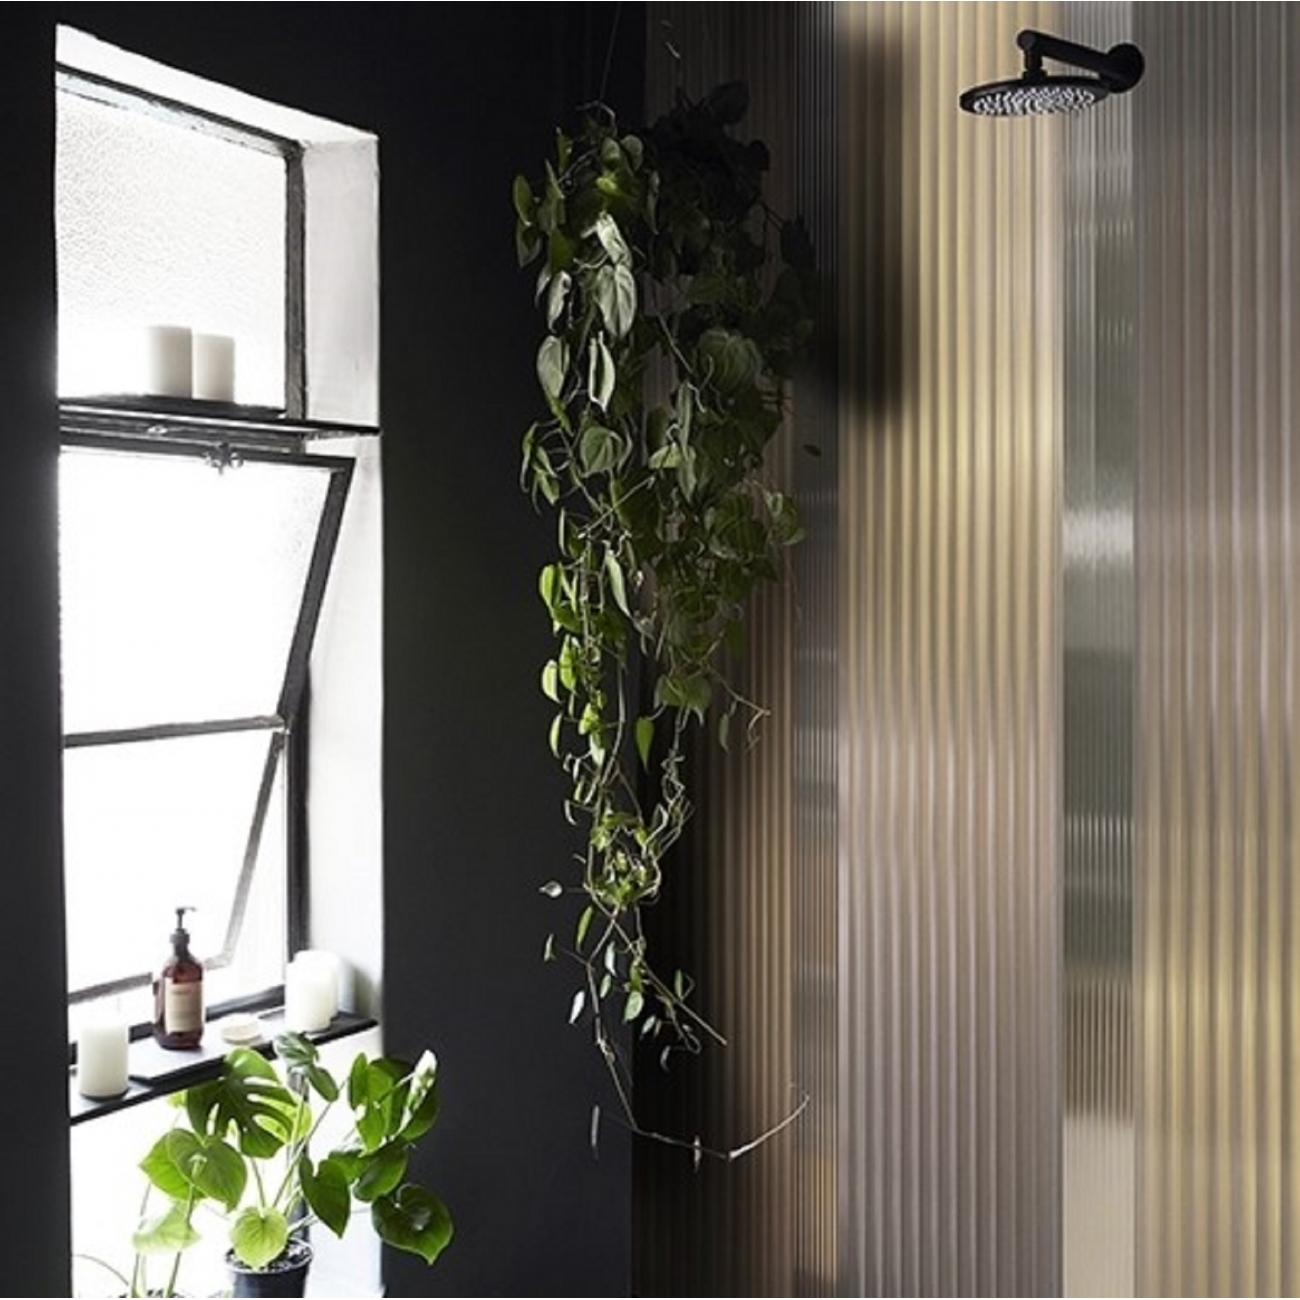 Wall Deco Wet System Singing In The Rain Wallpaper Tattahome